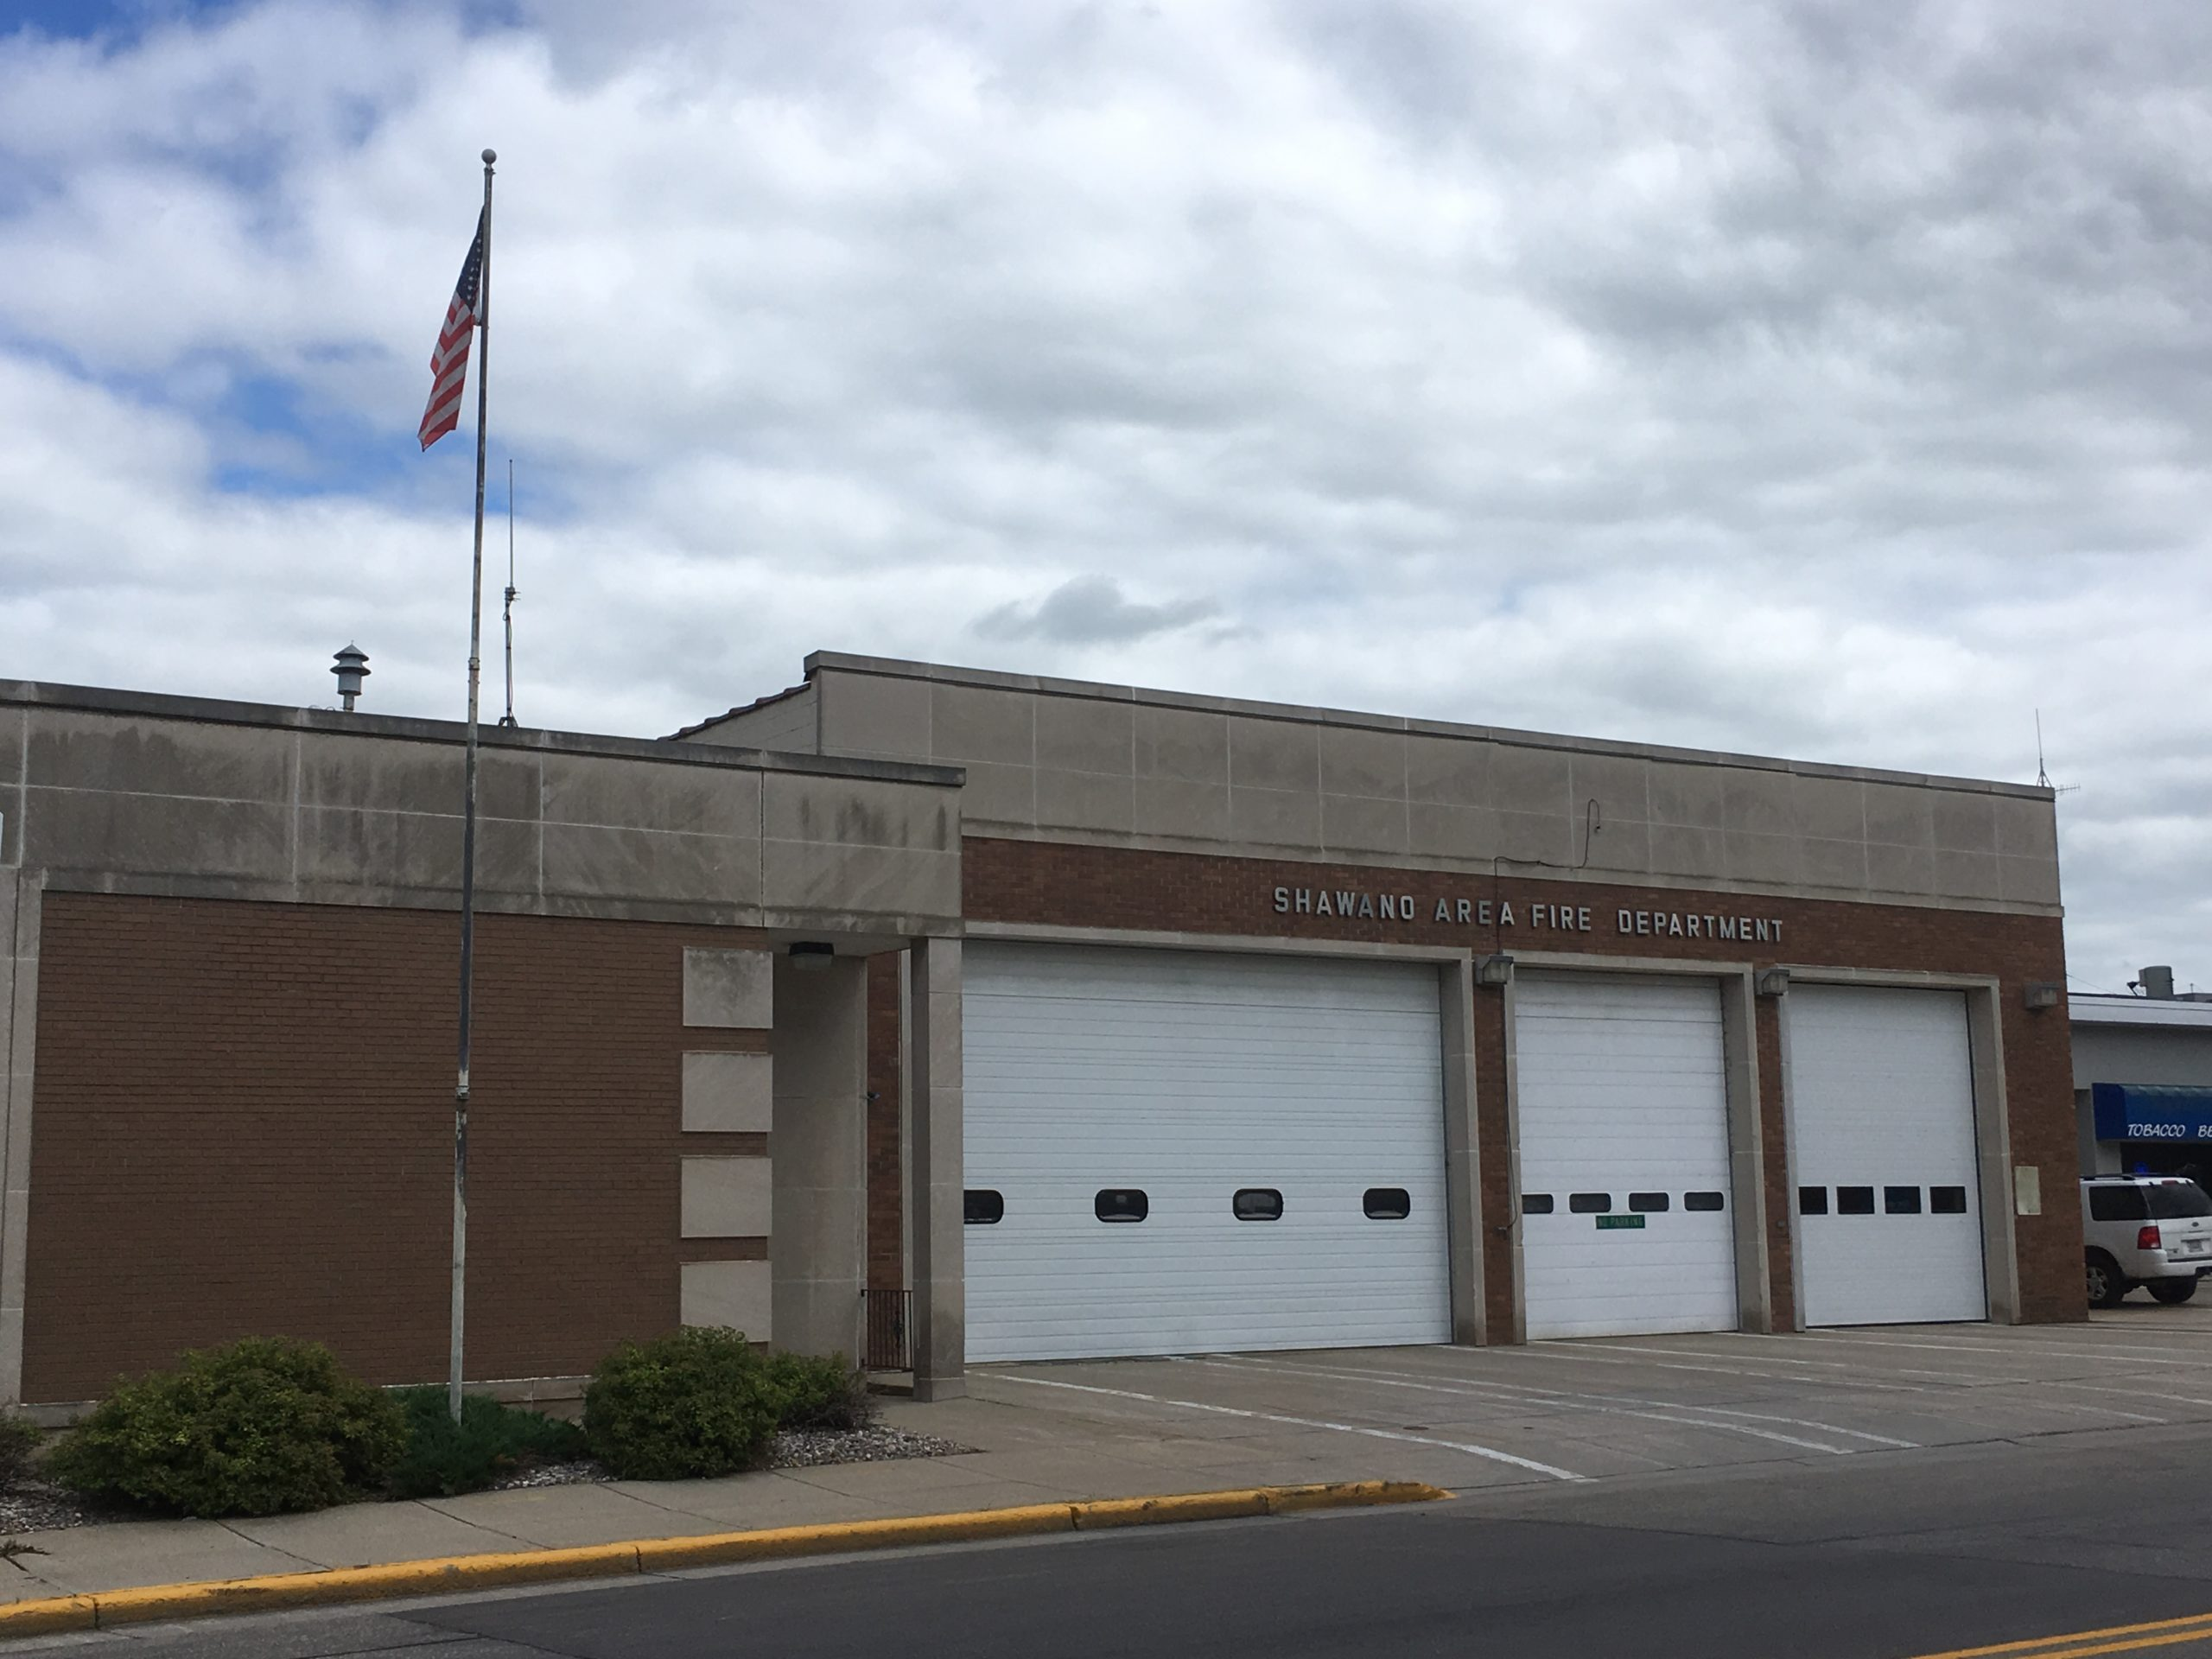 Shawano Fire Department building to receive improvements